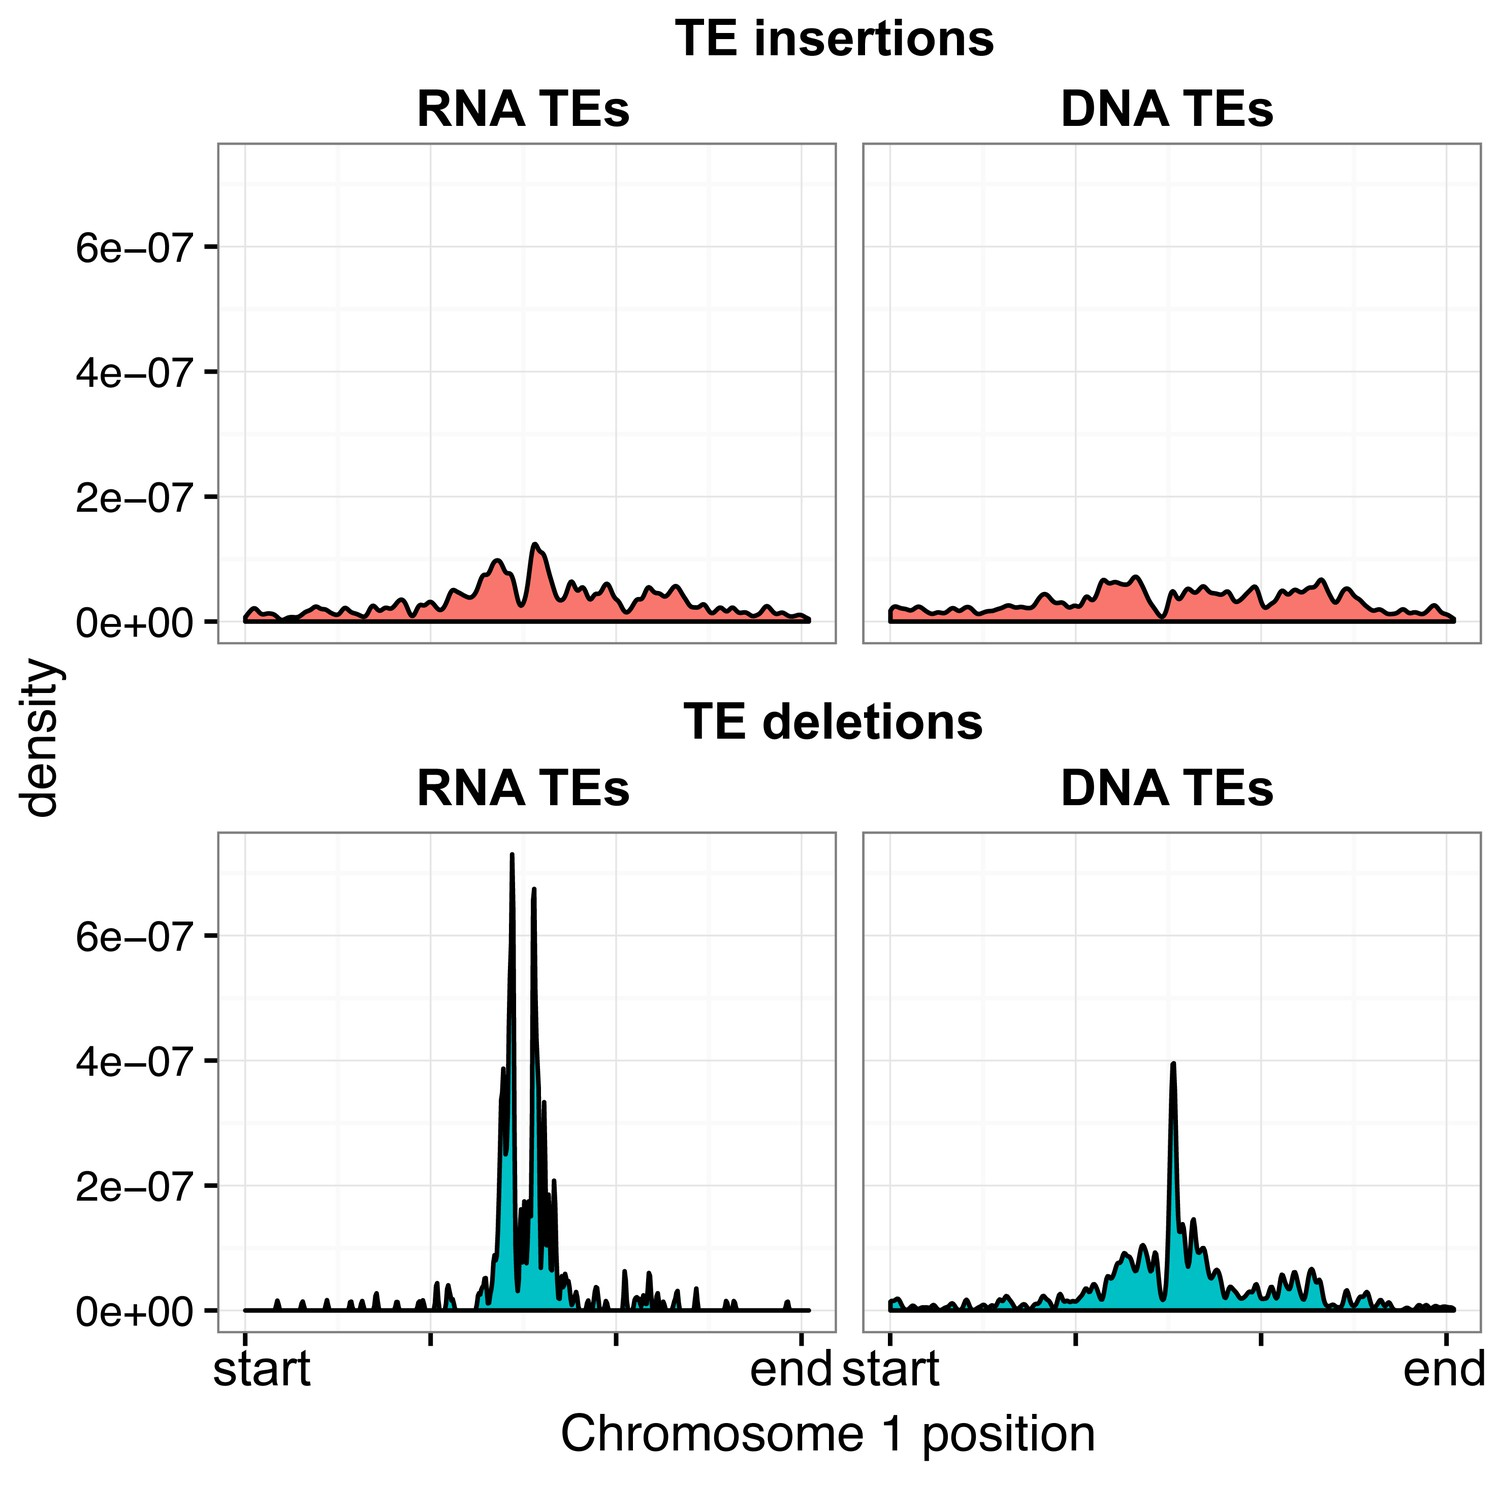 hight resolution of distribution of rna and dna transposable elements over chromosome 1 for te insertions and te deletions